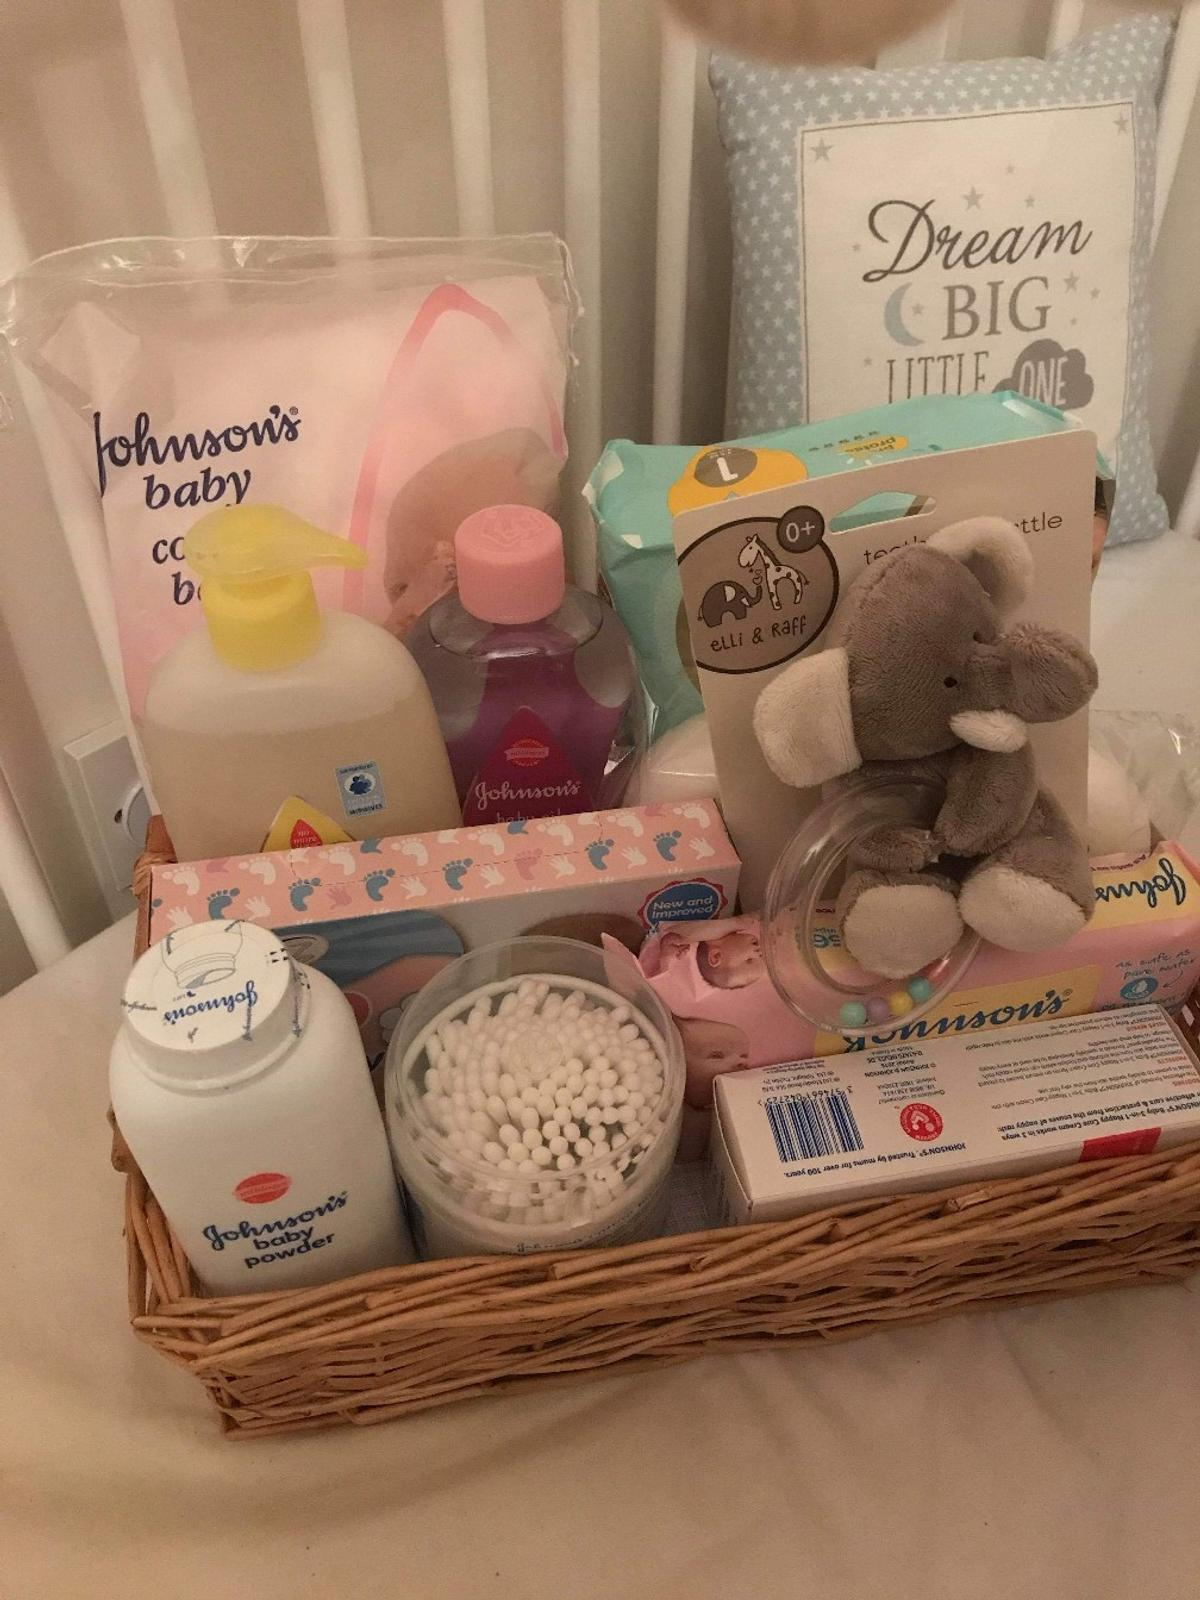 The Essential Baby Hampers In Castle Point For 30 00 For Sale Shpock